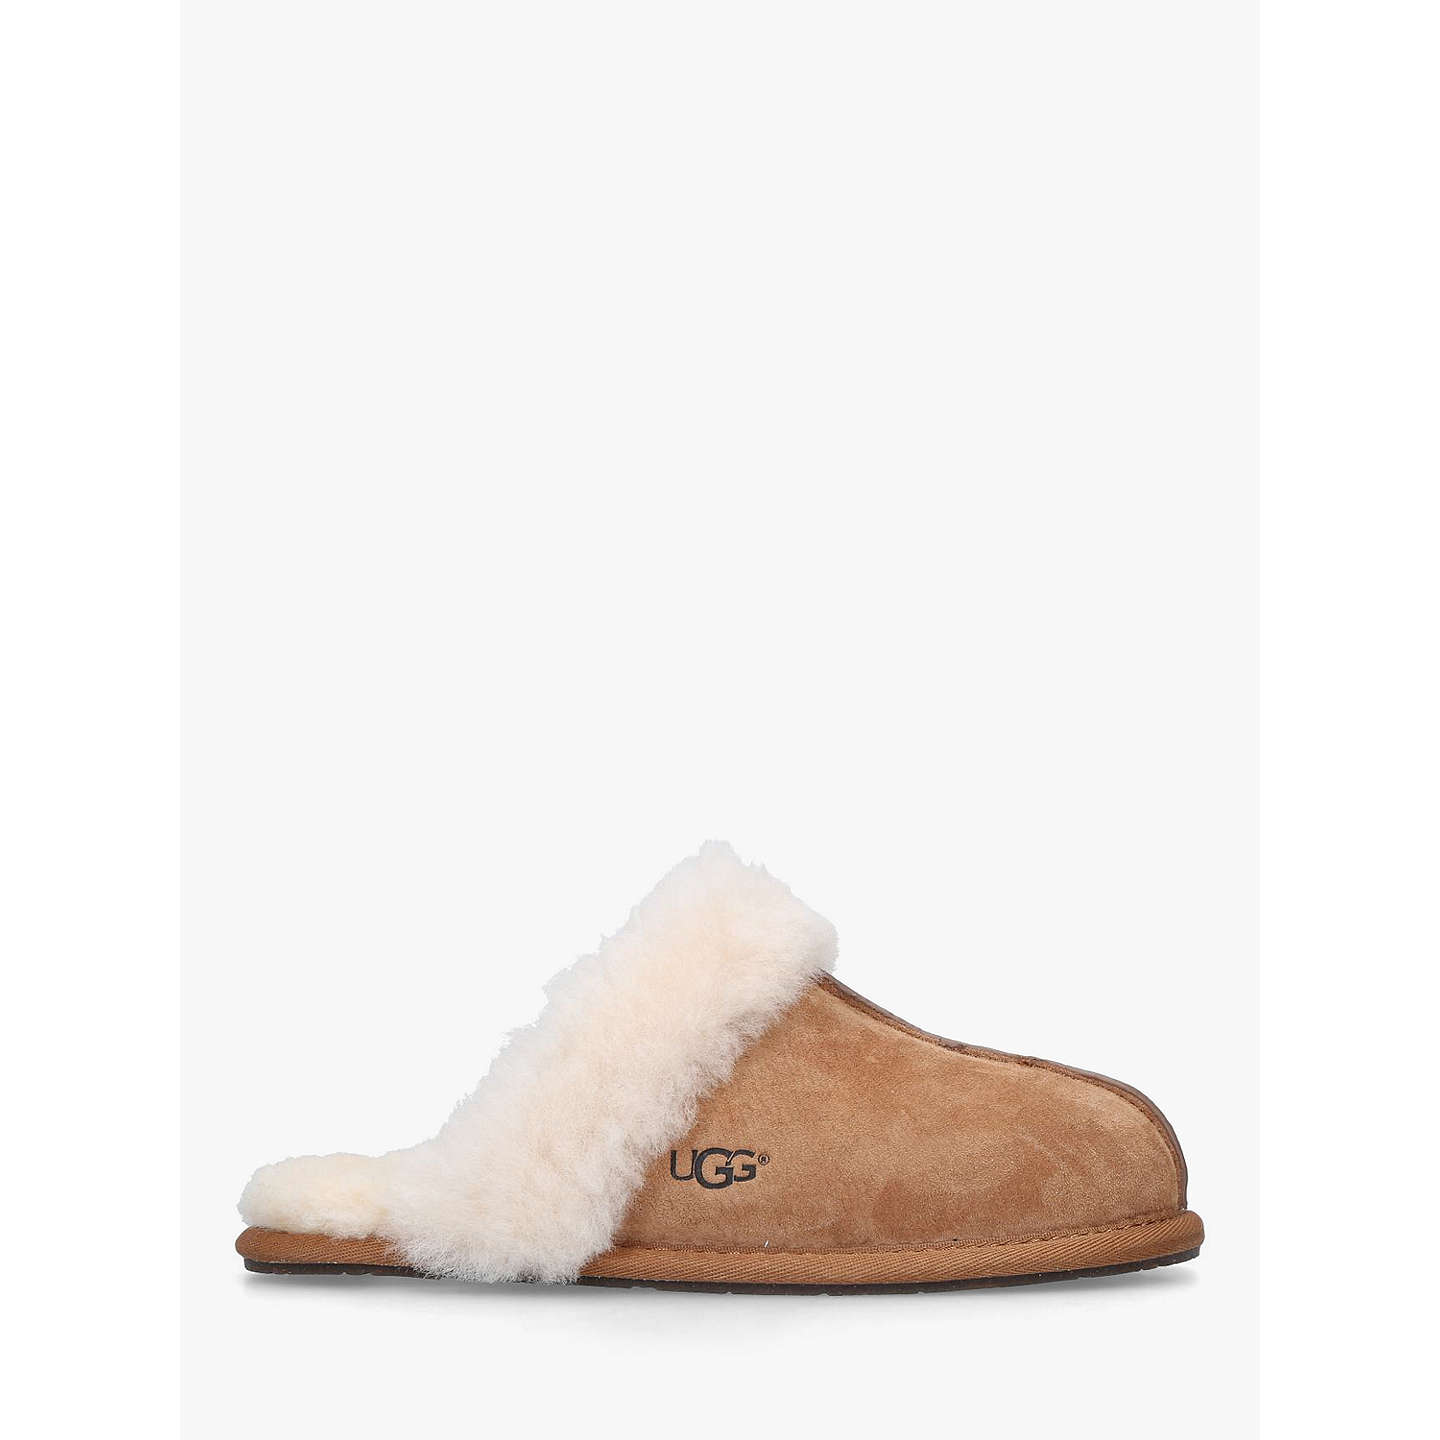 BuyUGG Scuffette II Sheepskin Slippers, Brown, 5 Online at johnlewis.com ...